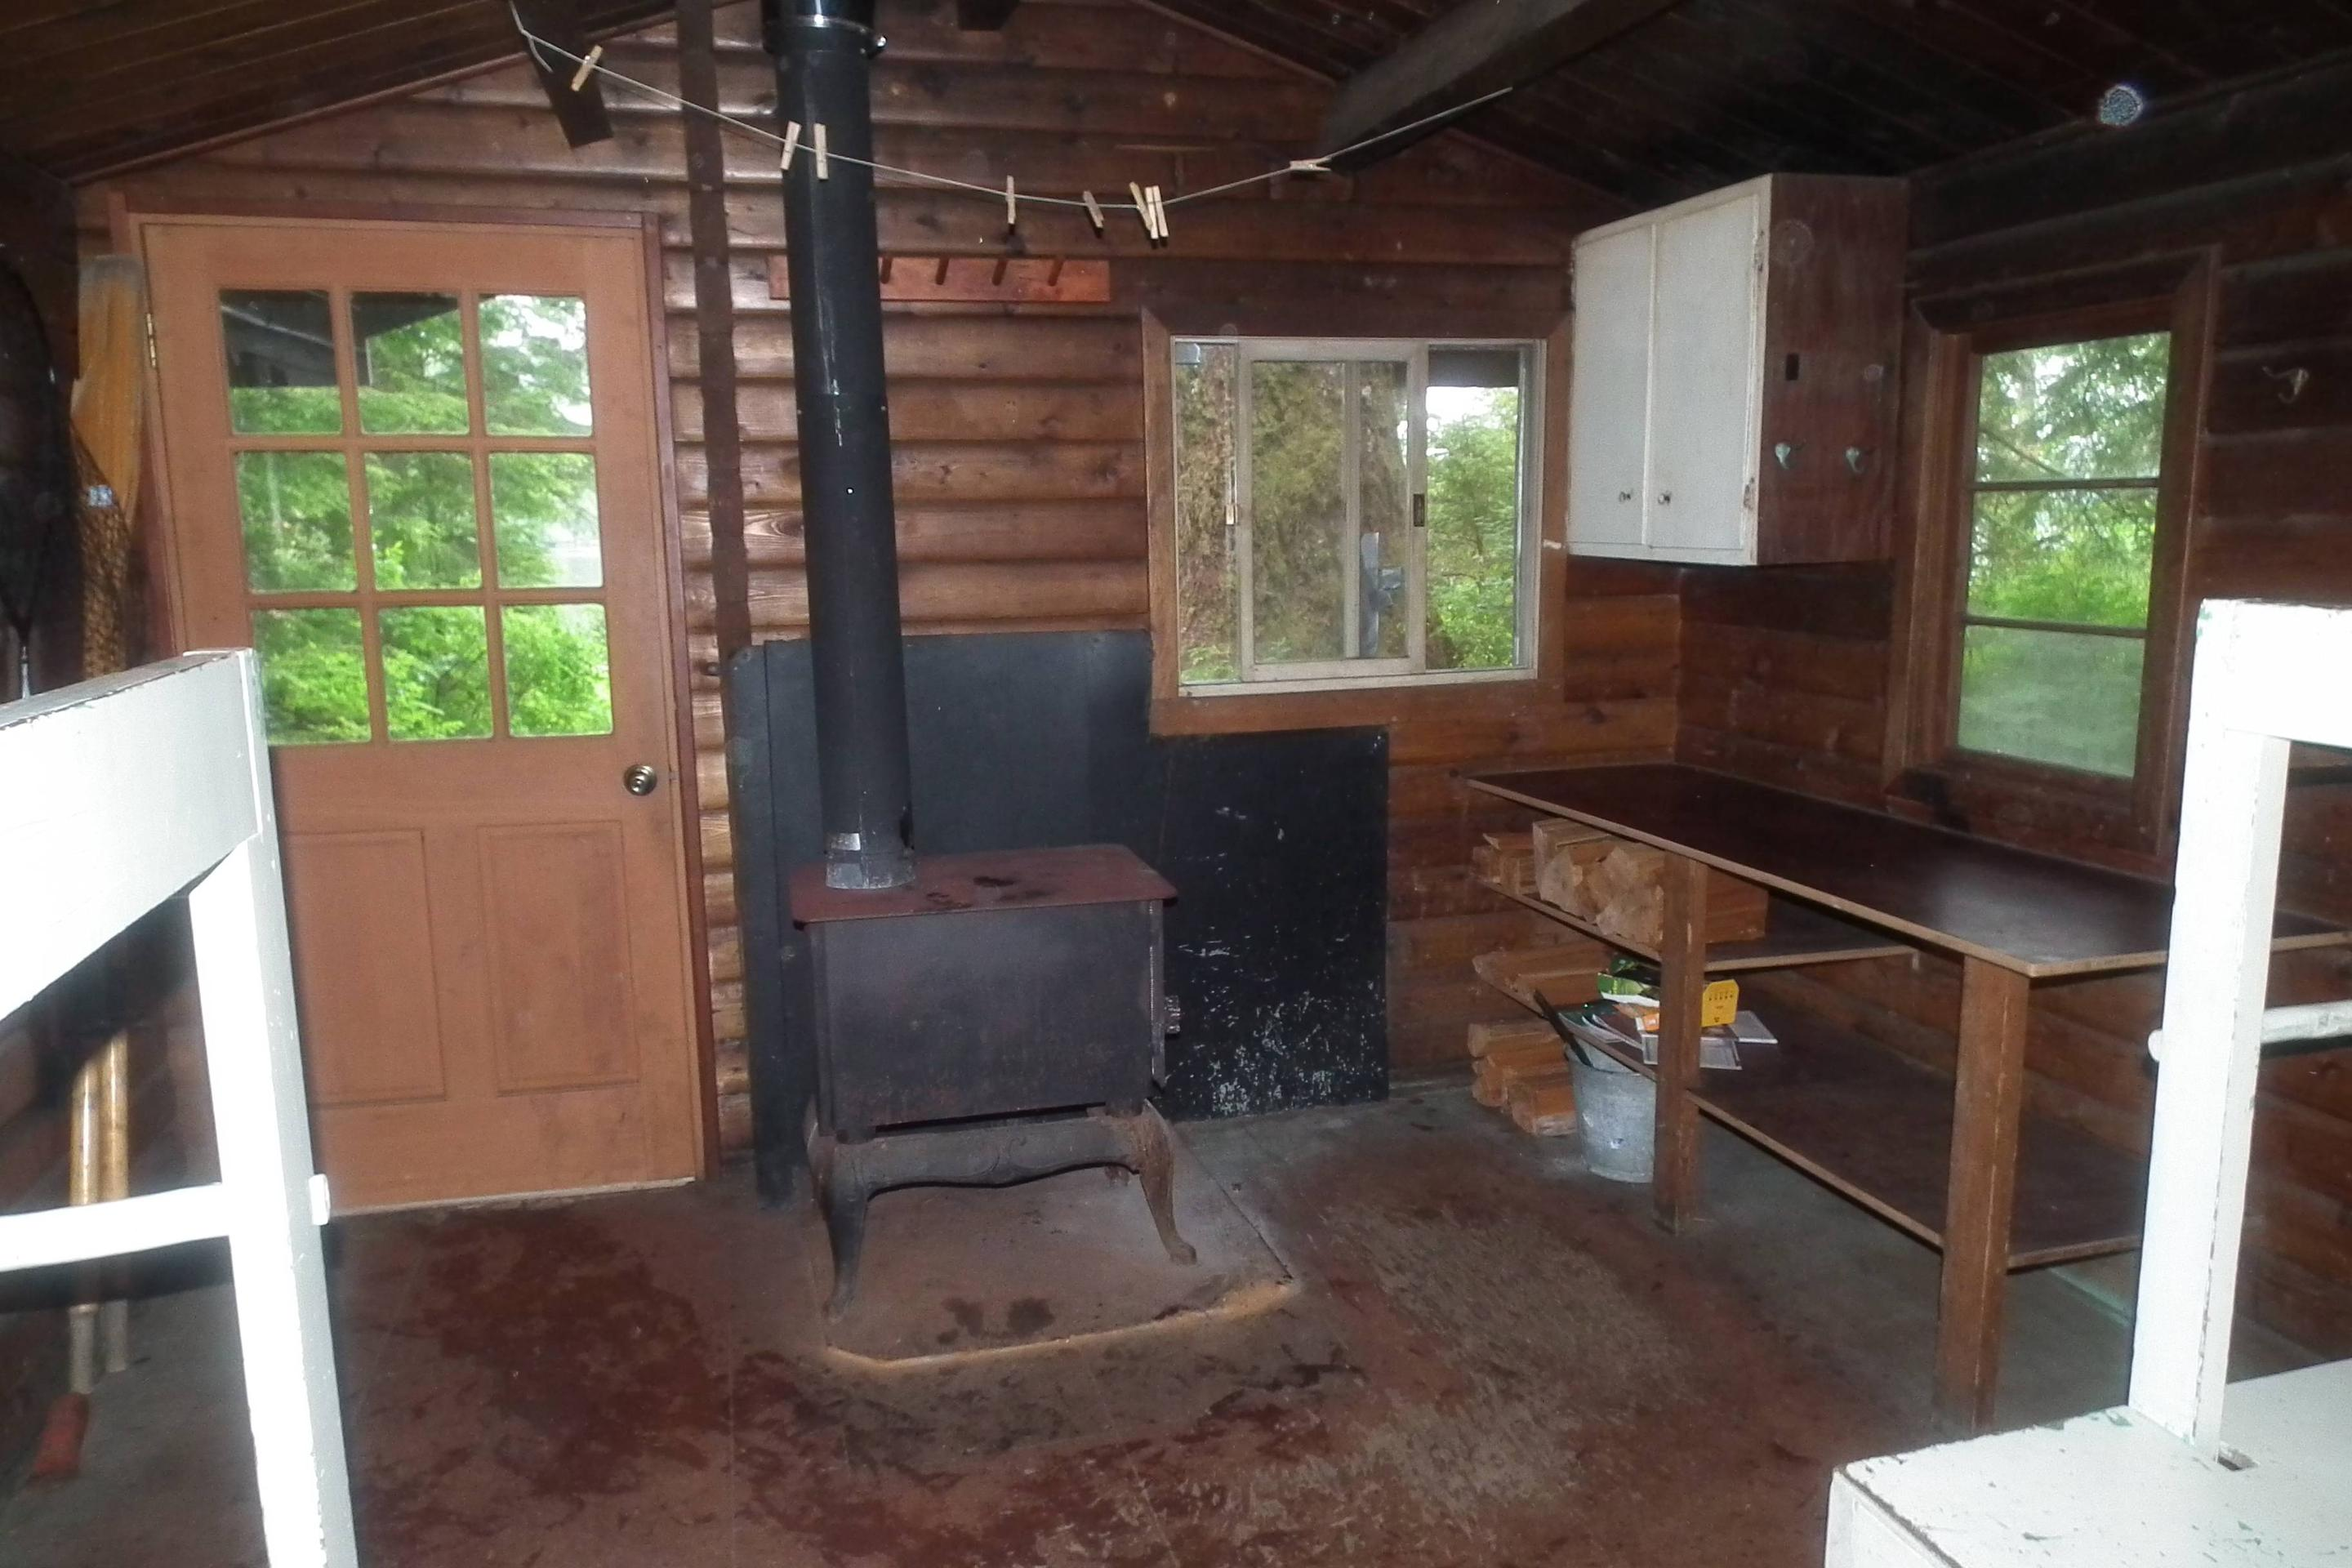 Kitchen, Entrance, and Stove